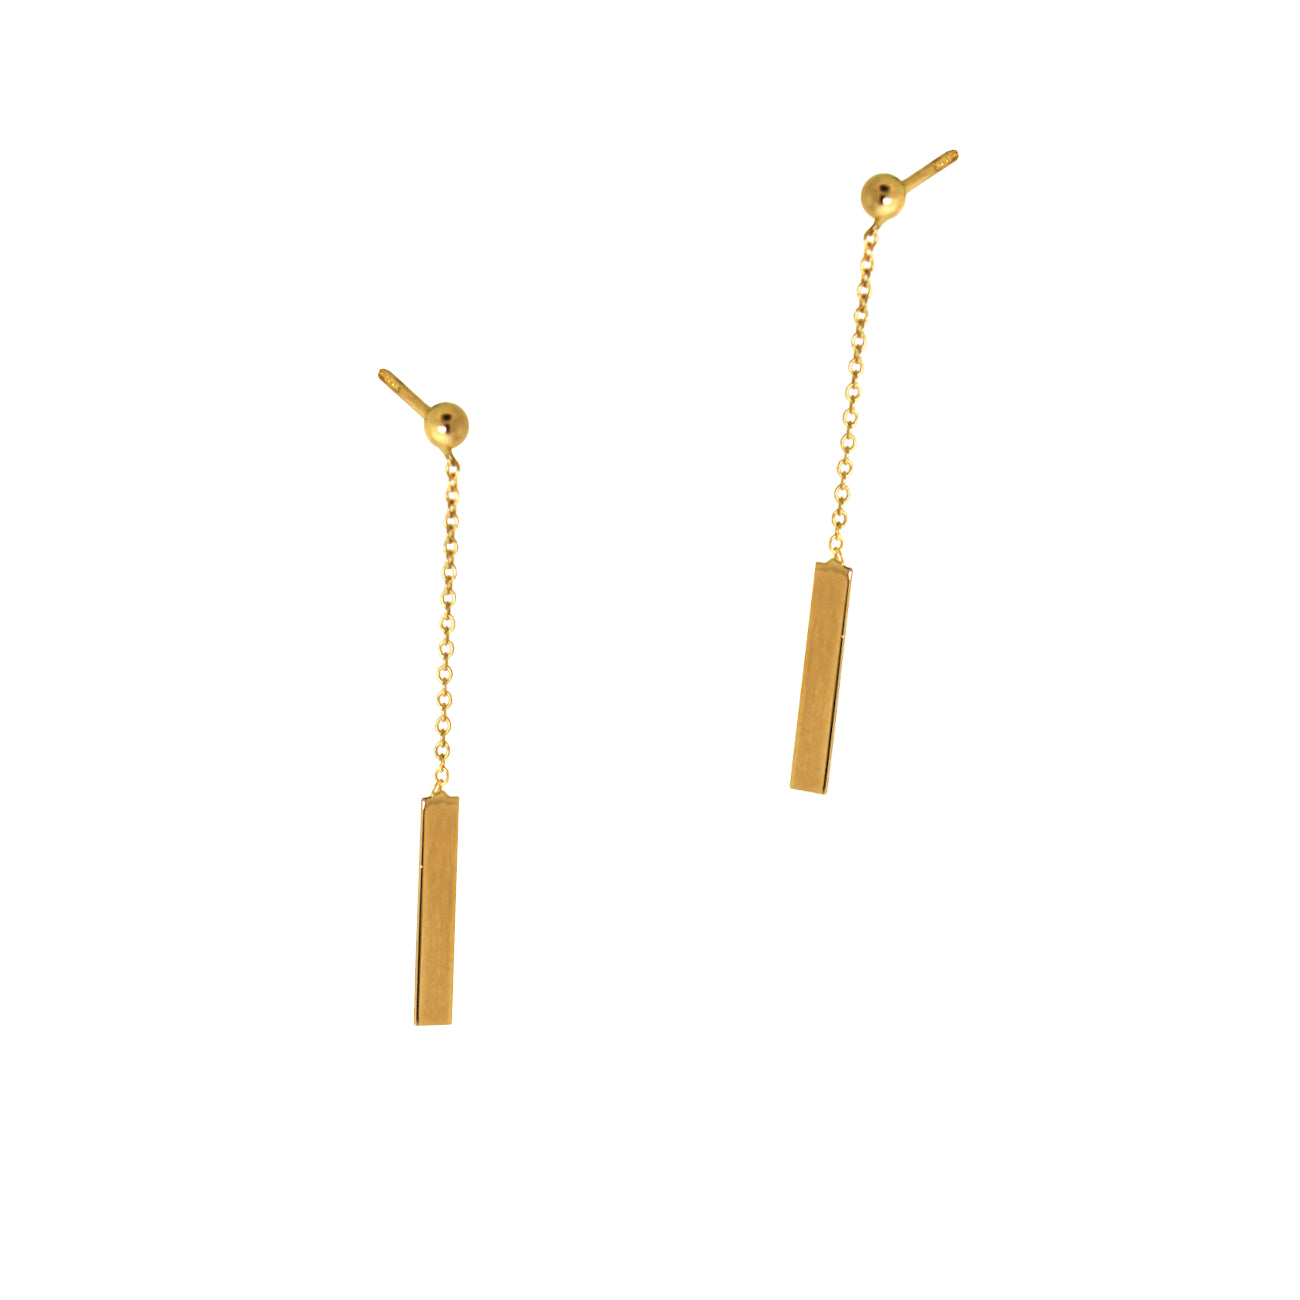 Hanging Baton Earrings